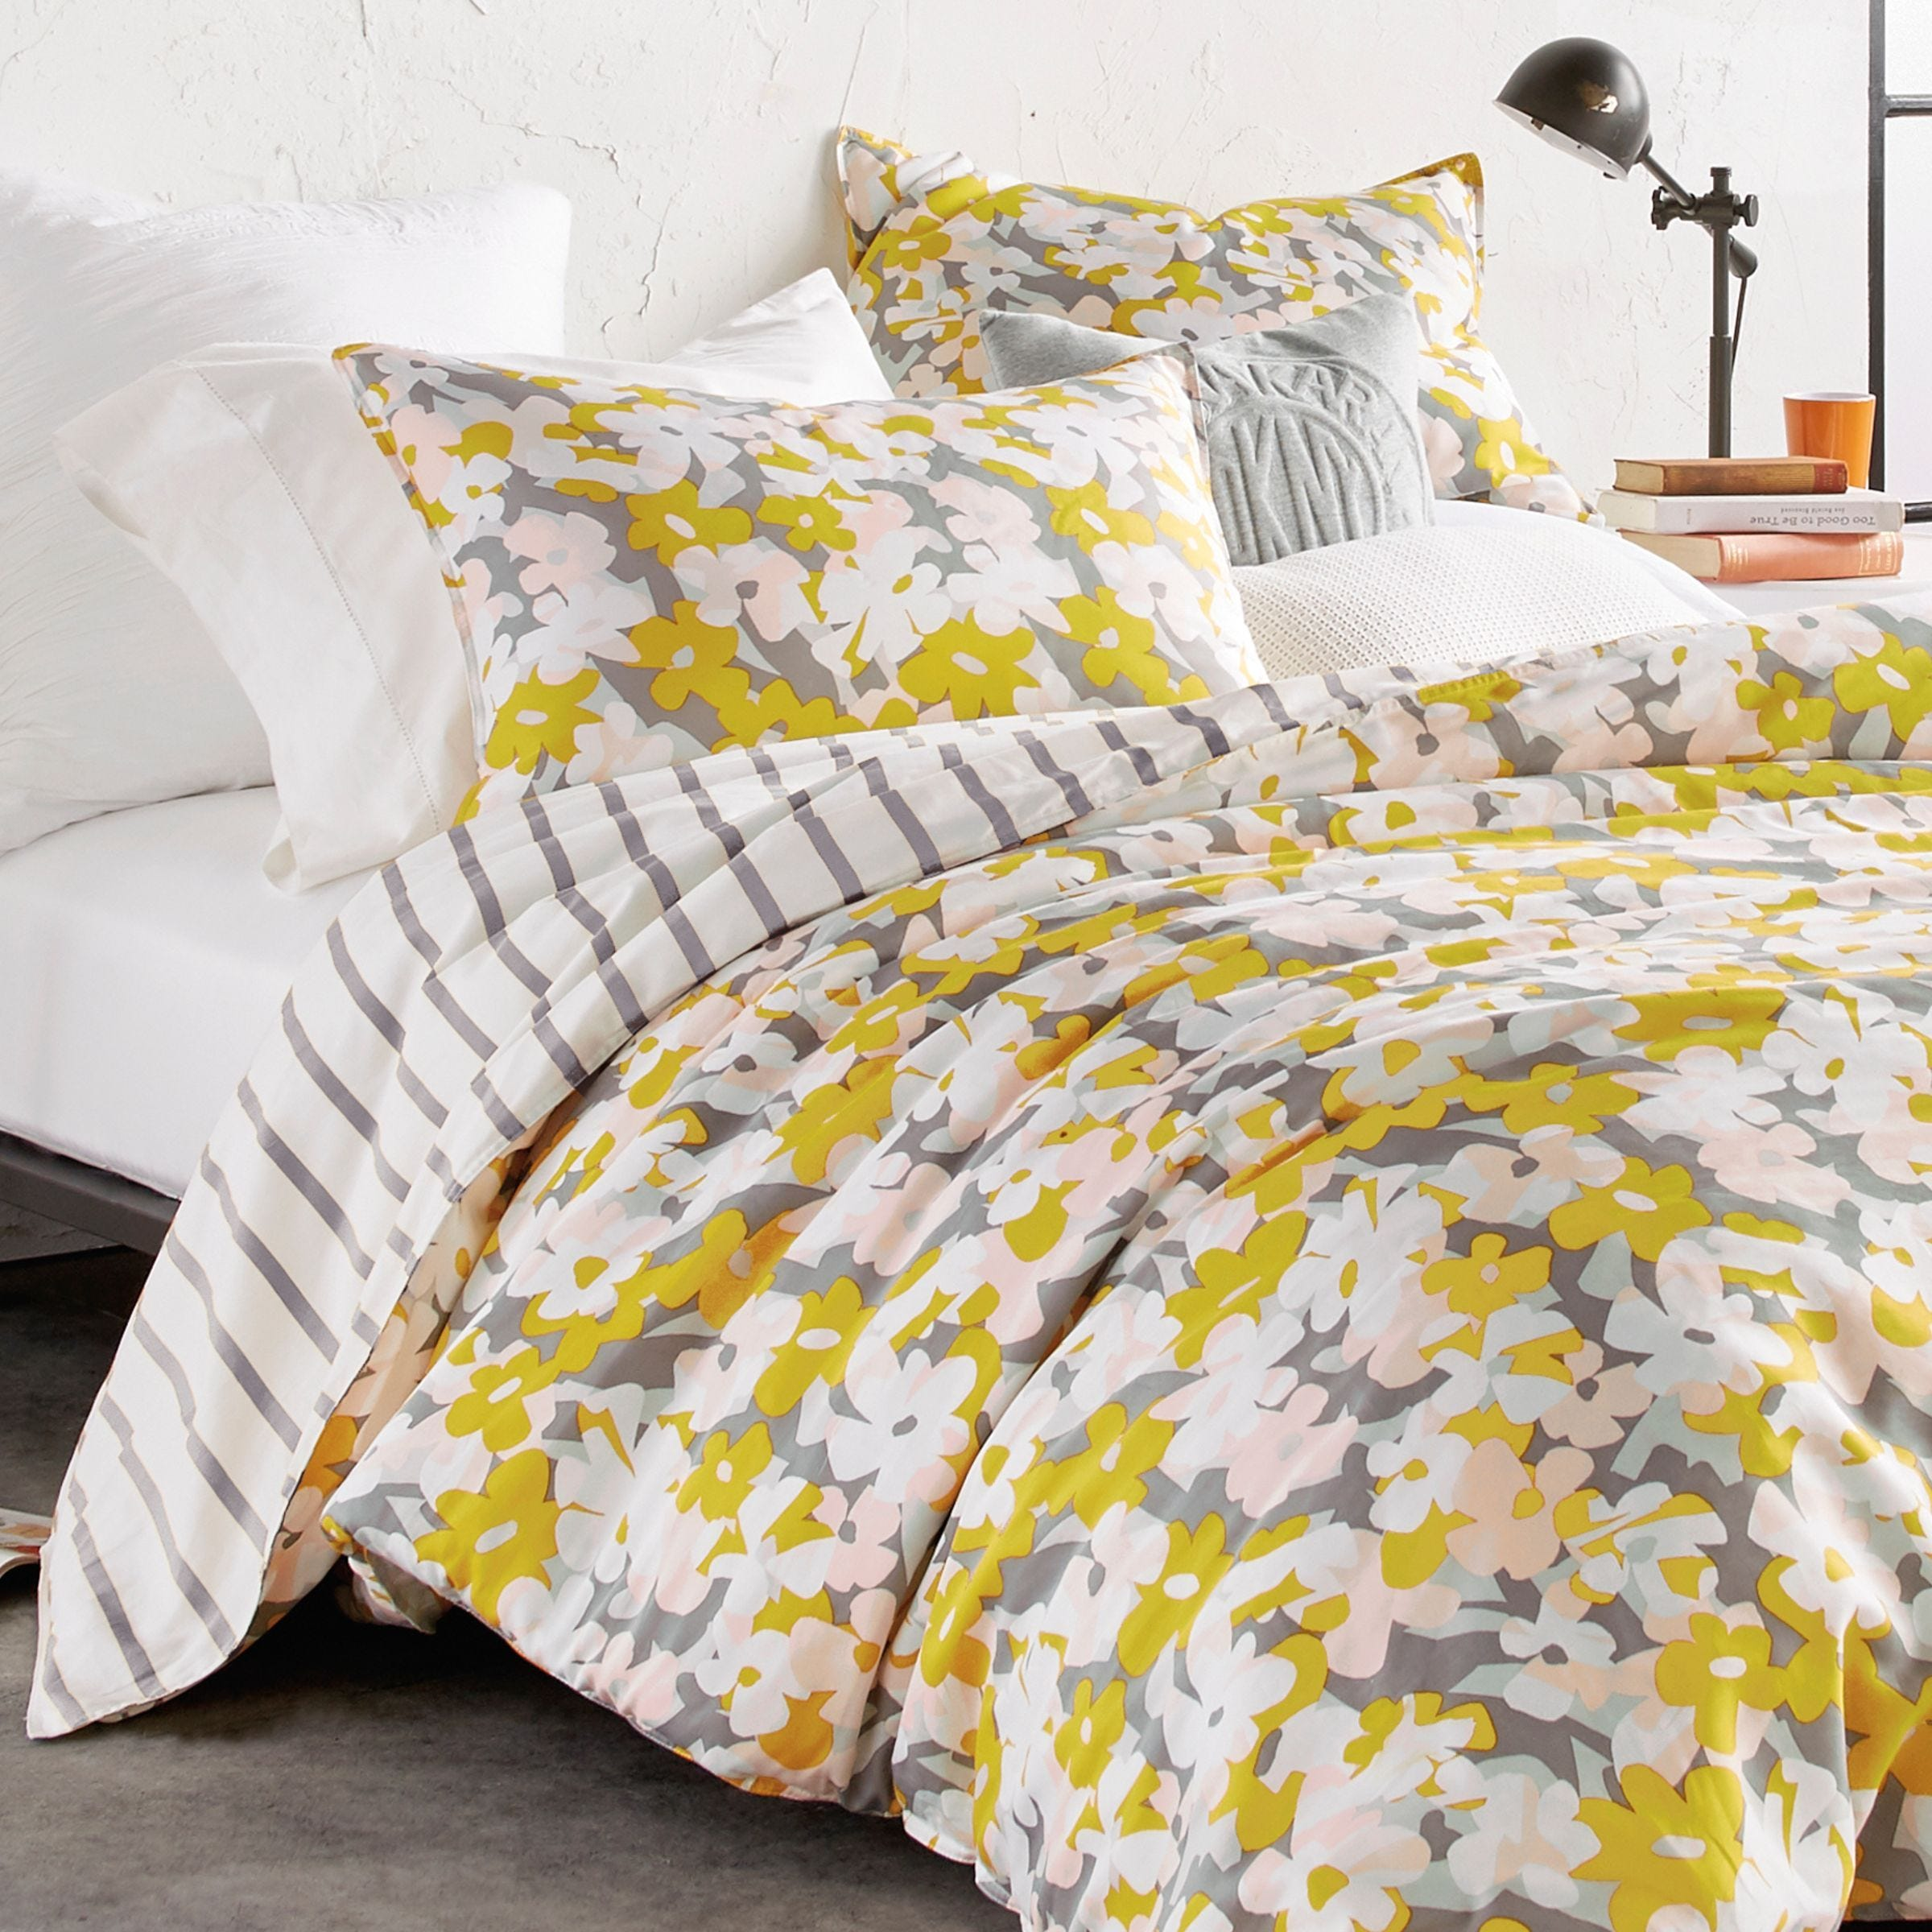 Dkny Cutout Sunshine Yellow Floral Bedding Bedeck Home